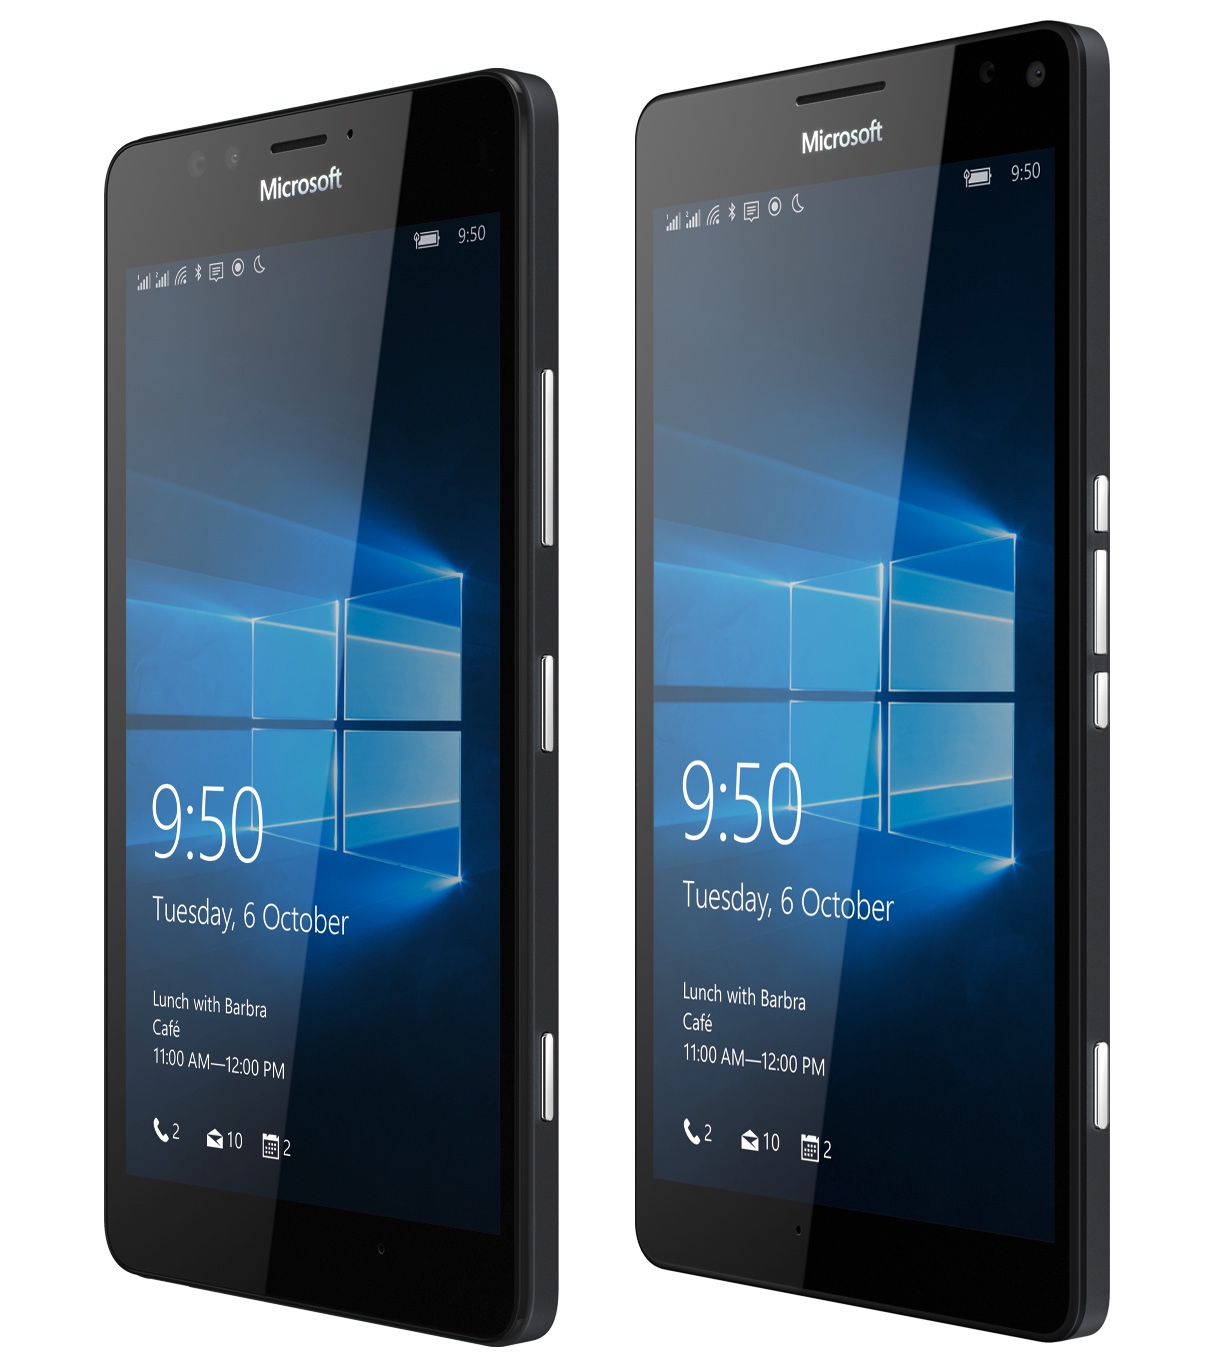 Lumia 950 and 950 XL, to scale